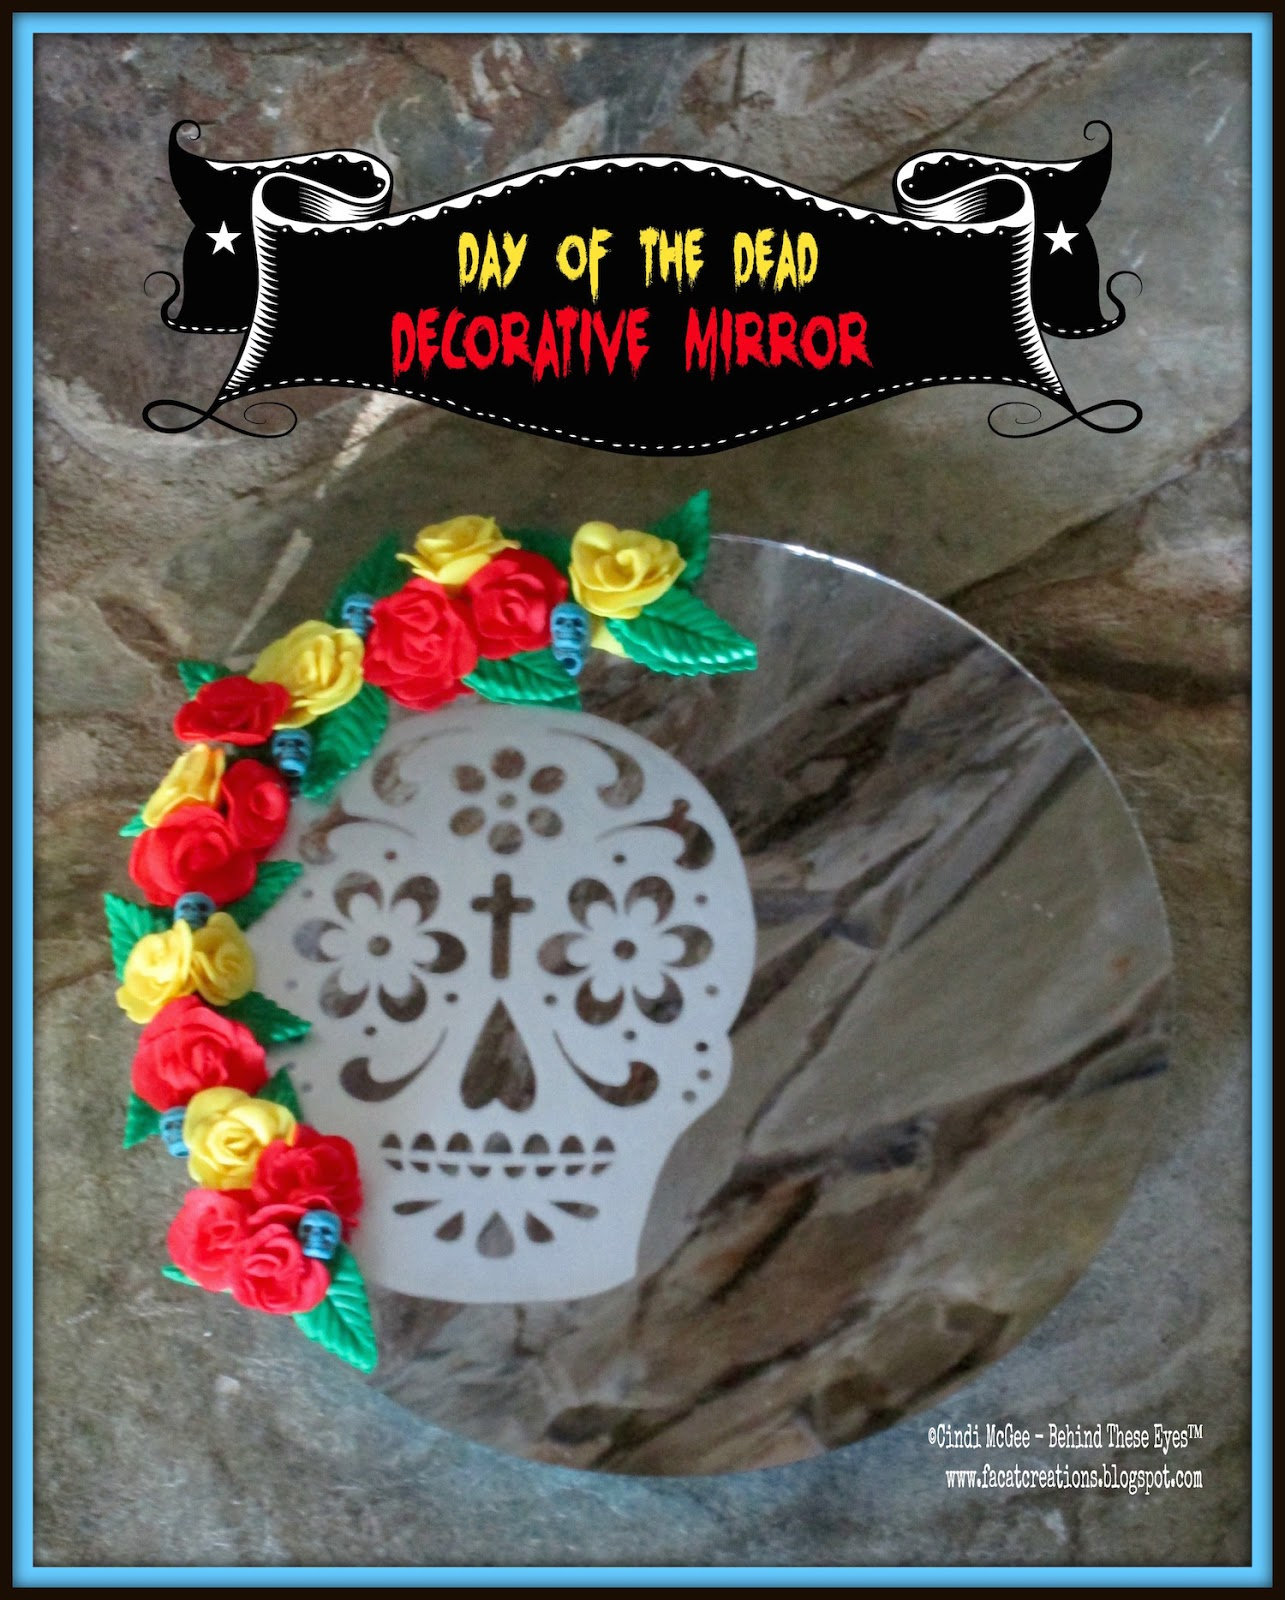 Day of the Dead Decorative Mirror